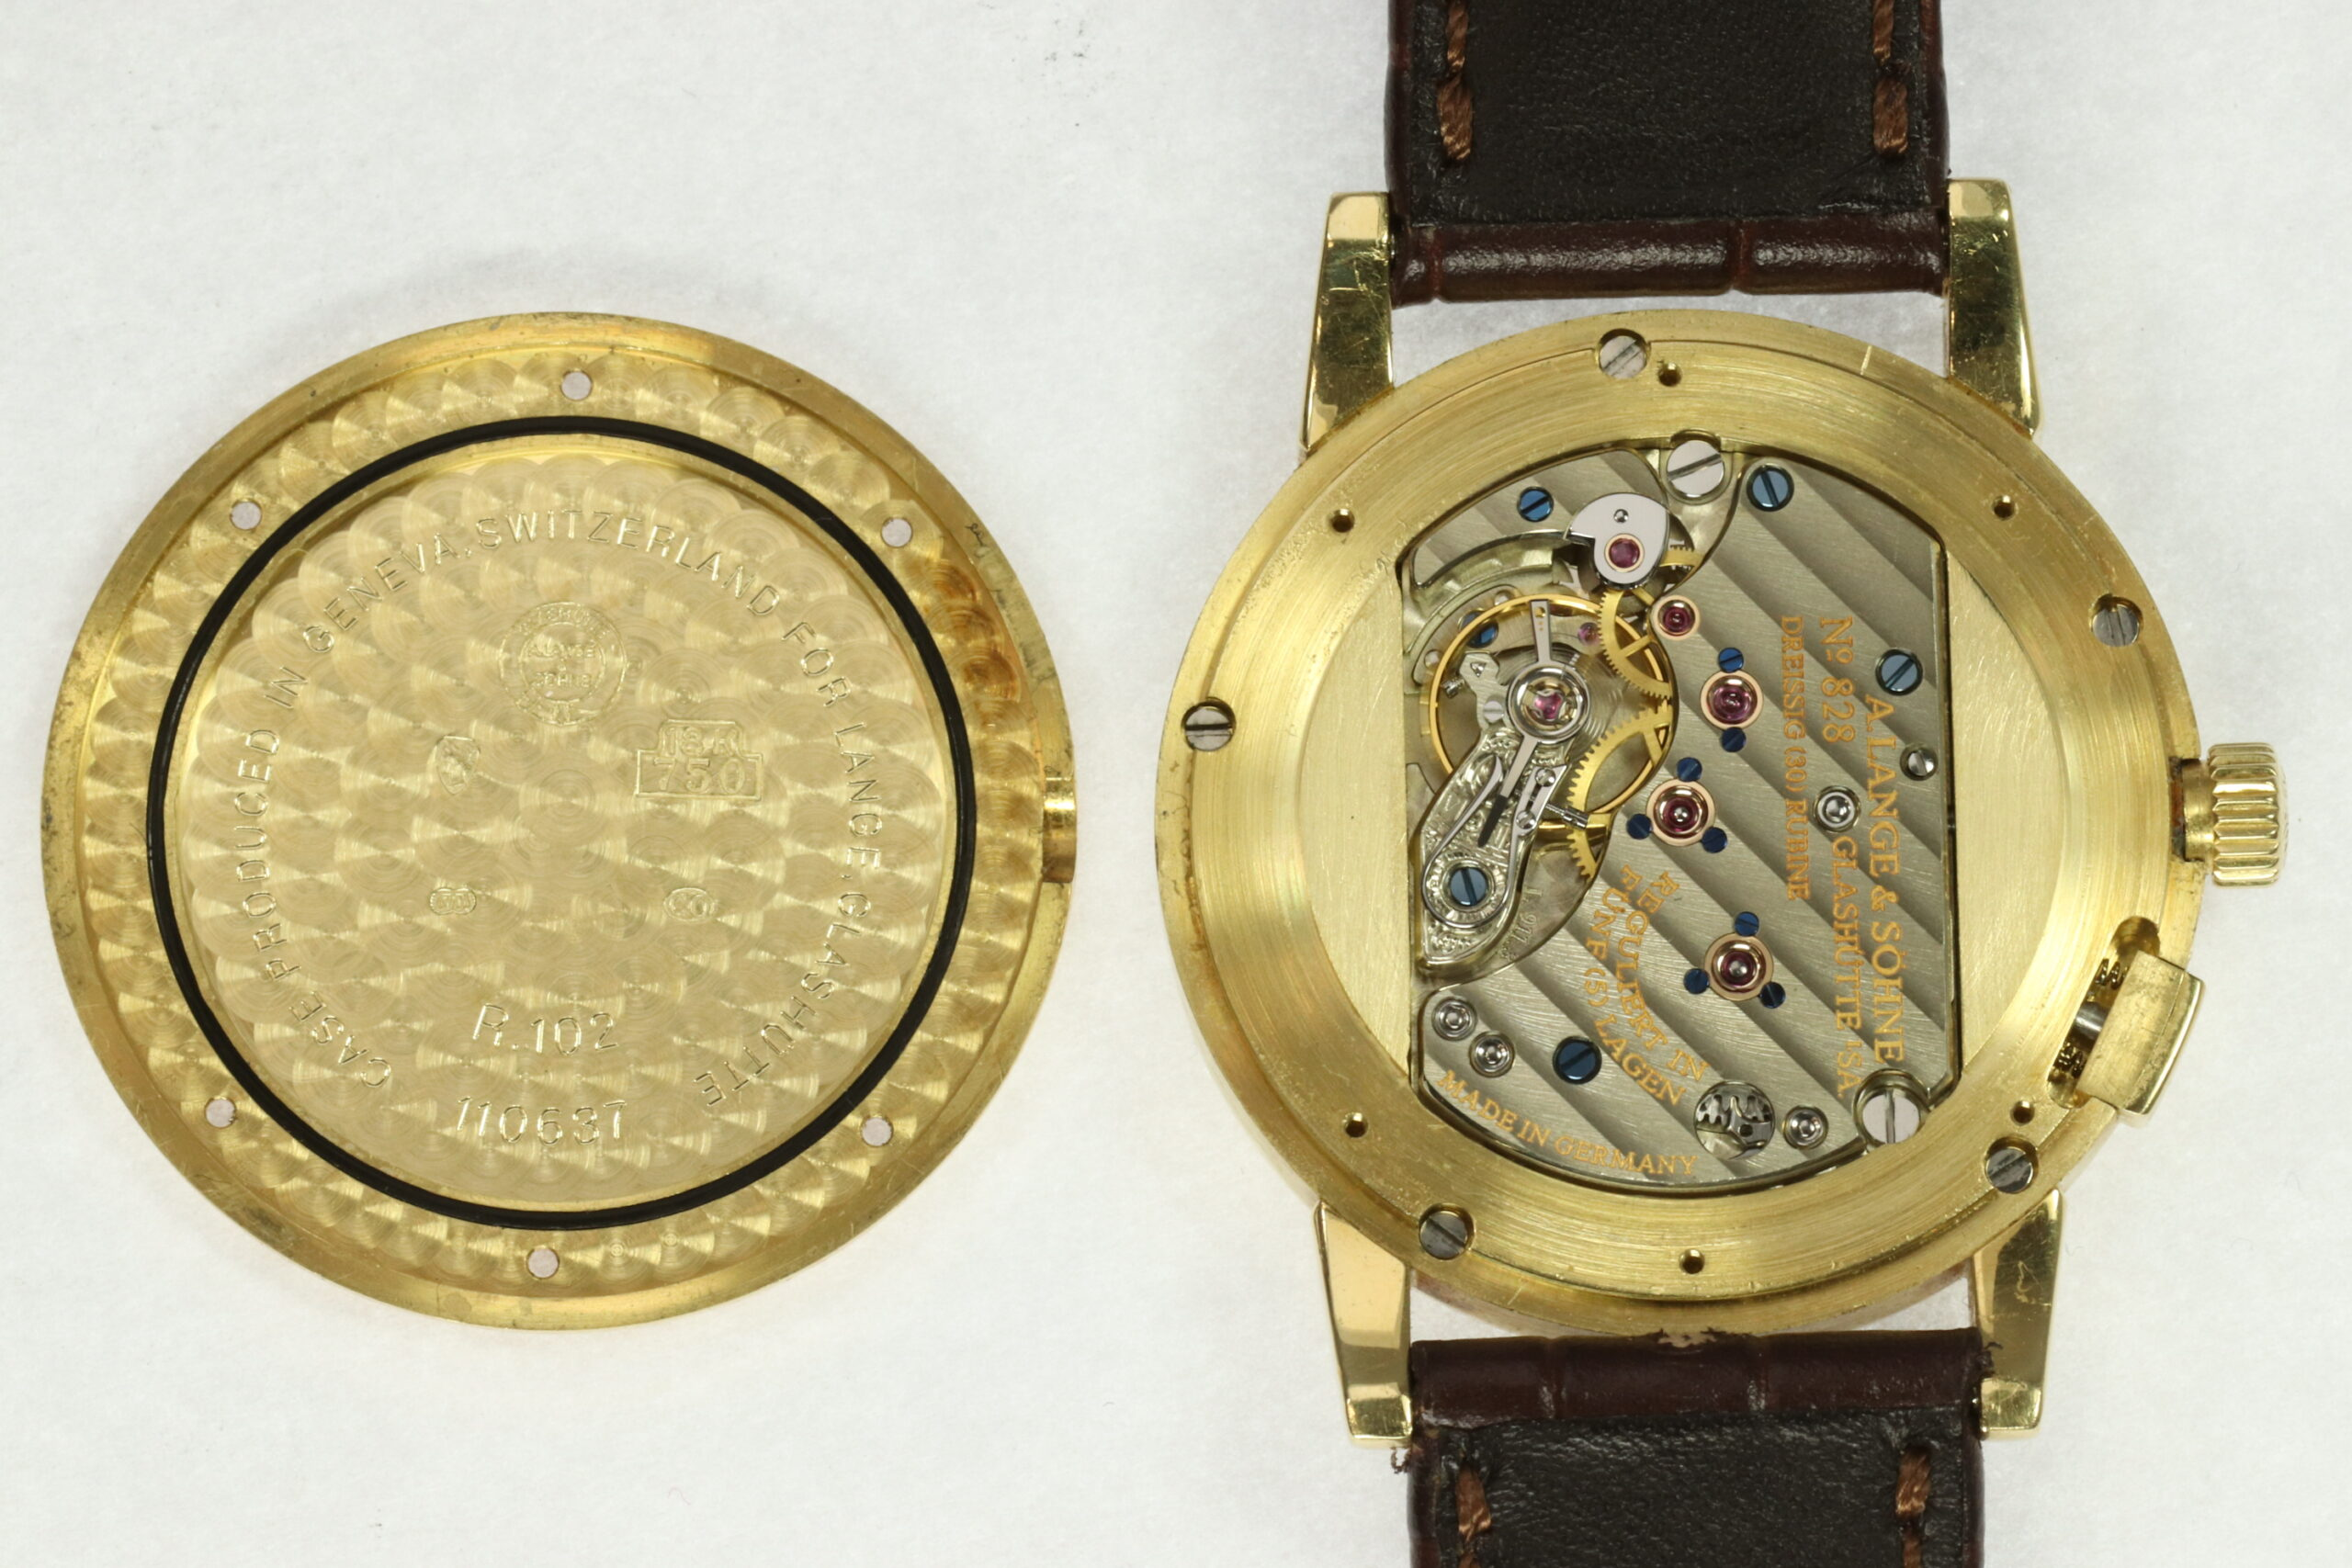 a lange söhne first saxonia with closed case back and yellow gold case, arkade movement inside